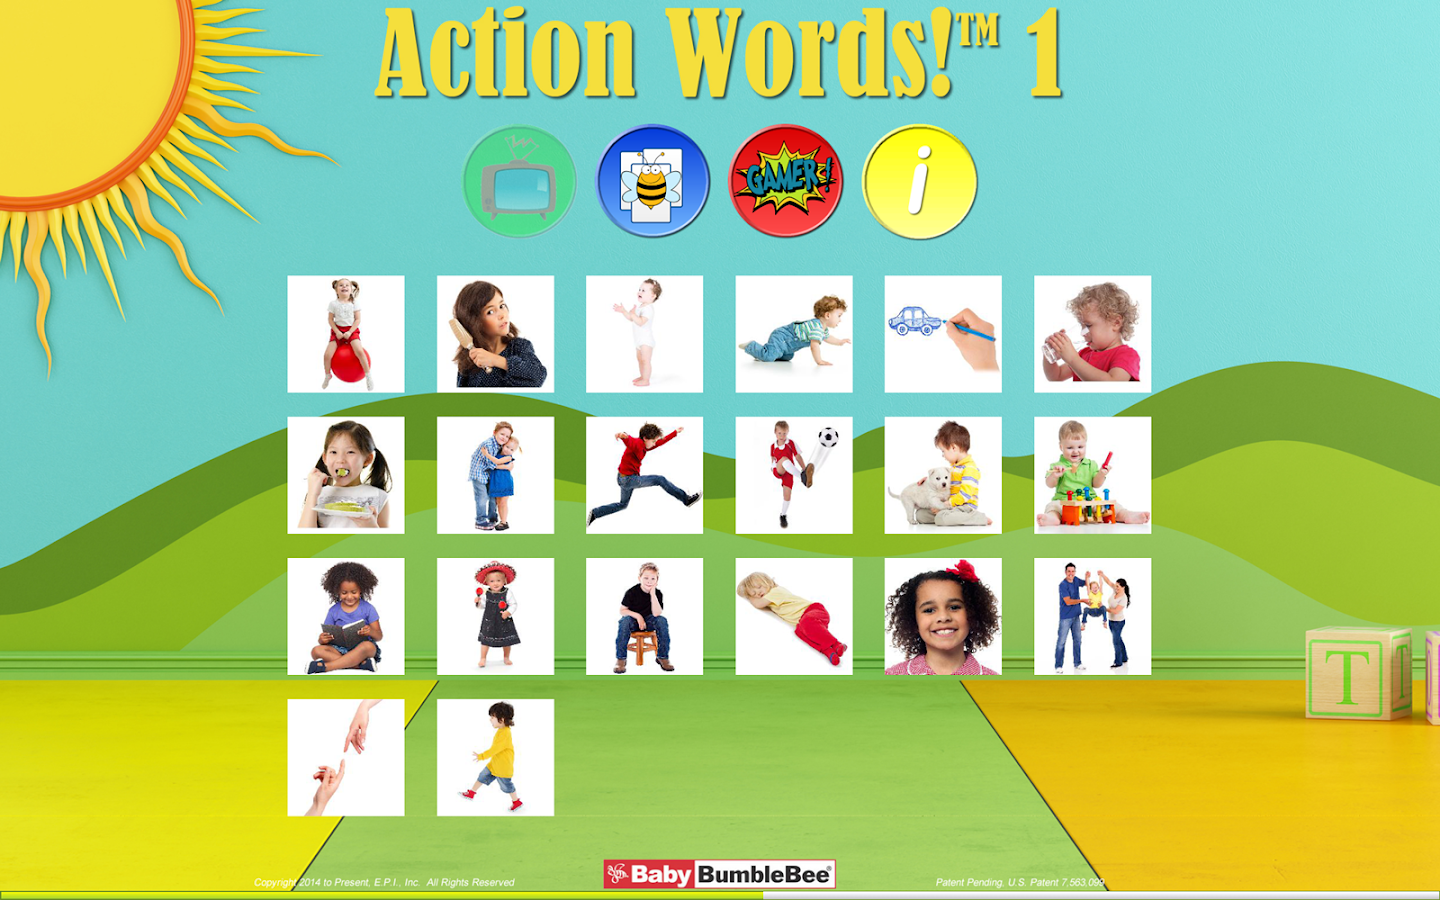 action words 1 flashcards android apps on google play action words 1 flashcards screenshot